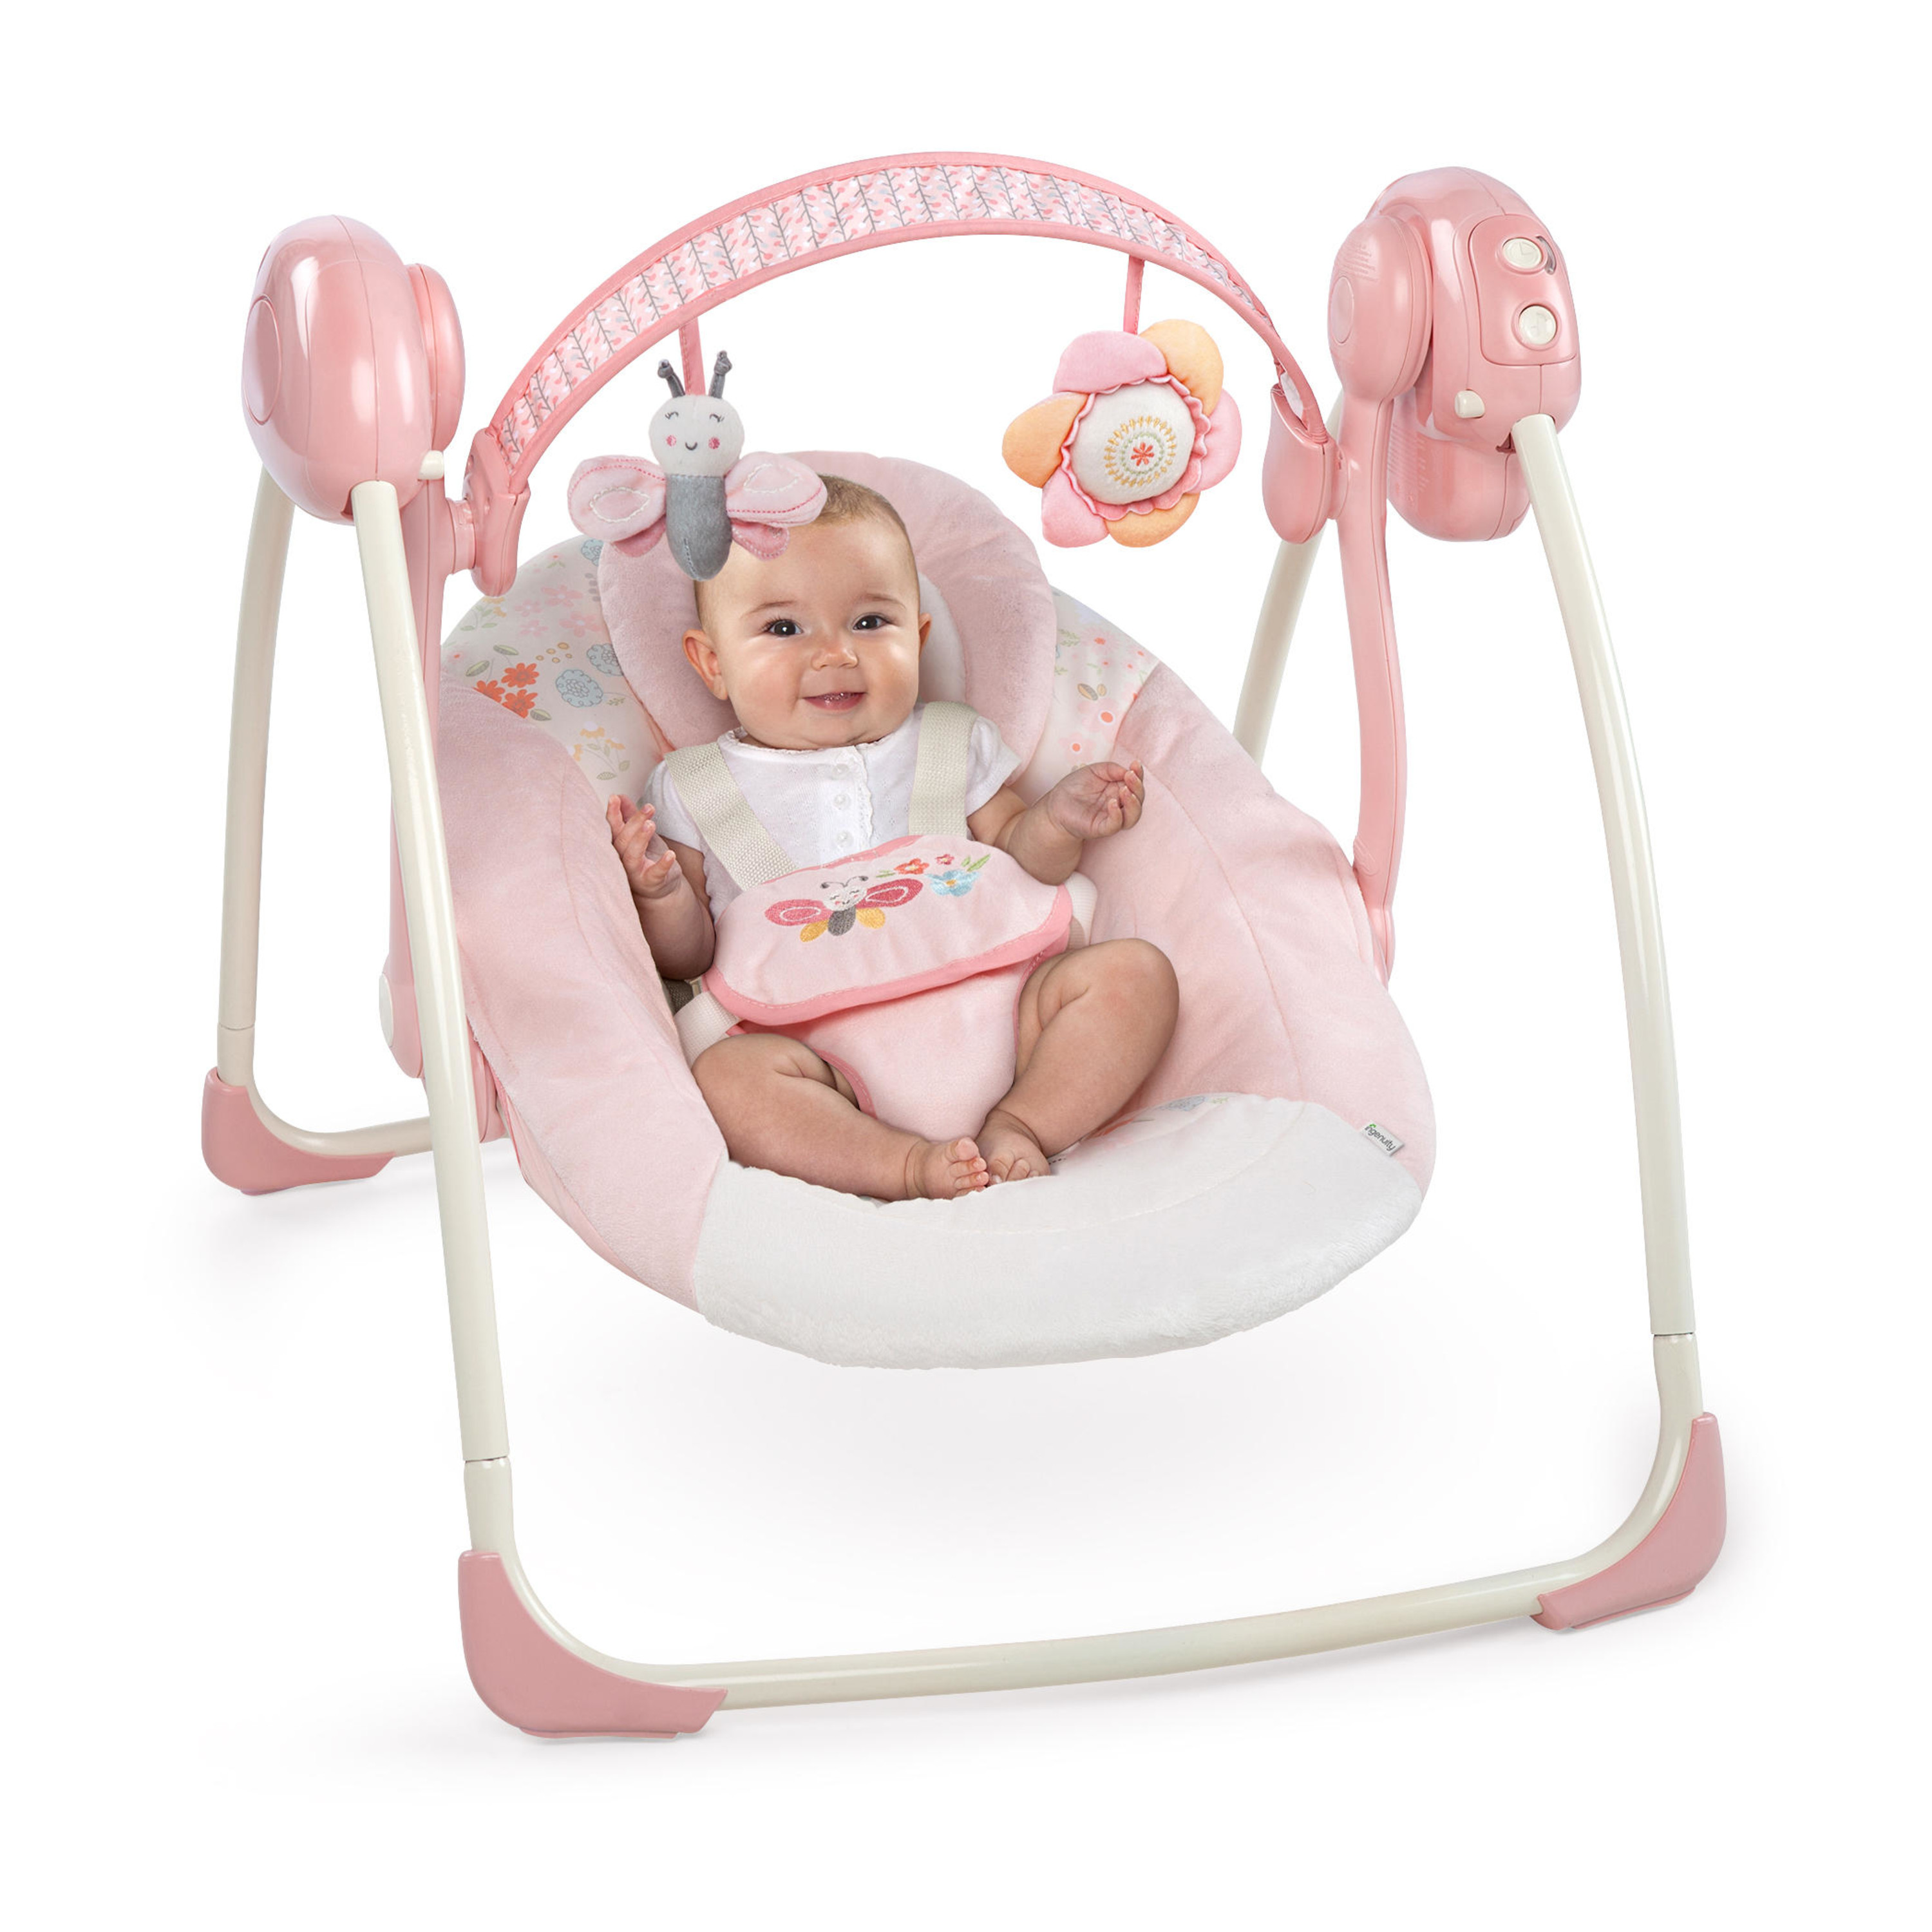 Ingenuity Portable Swing Felicity Floral Babygirl Promotion Bright Starts Smartbounce Automatic Bouncer Winslow